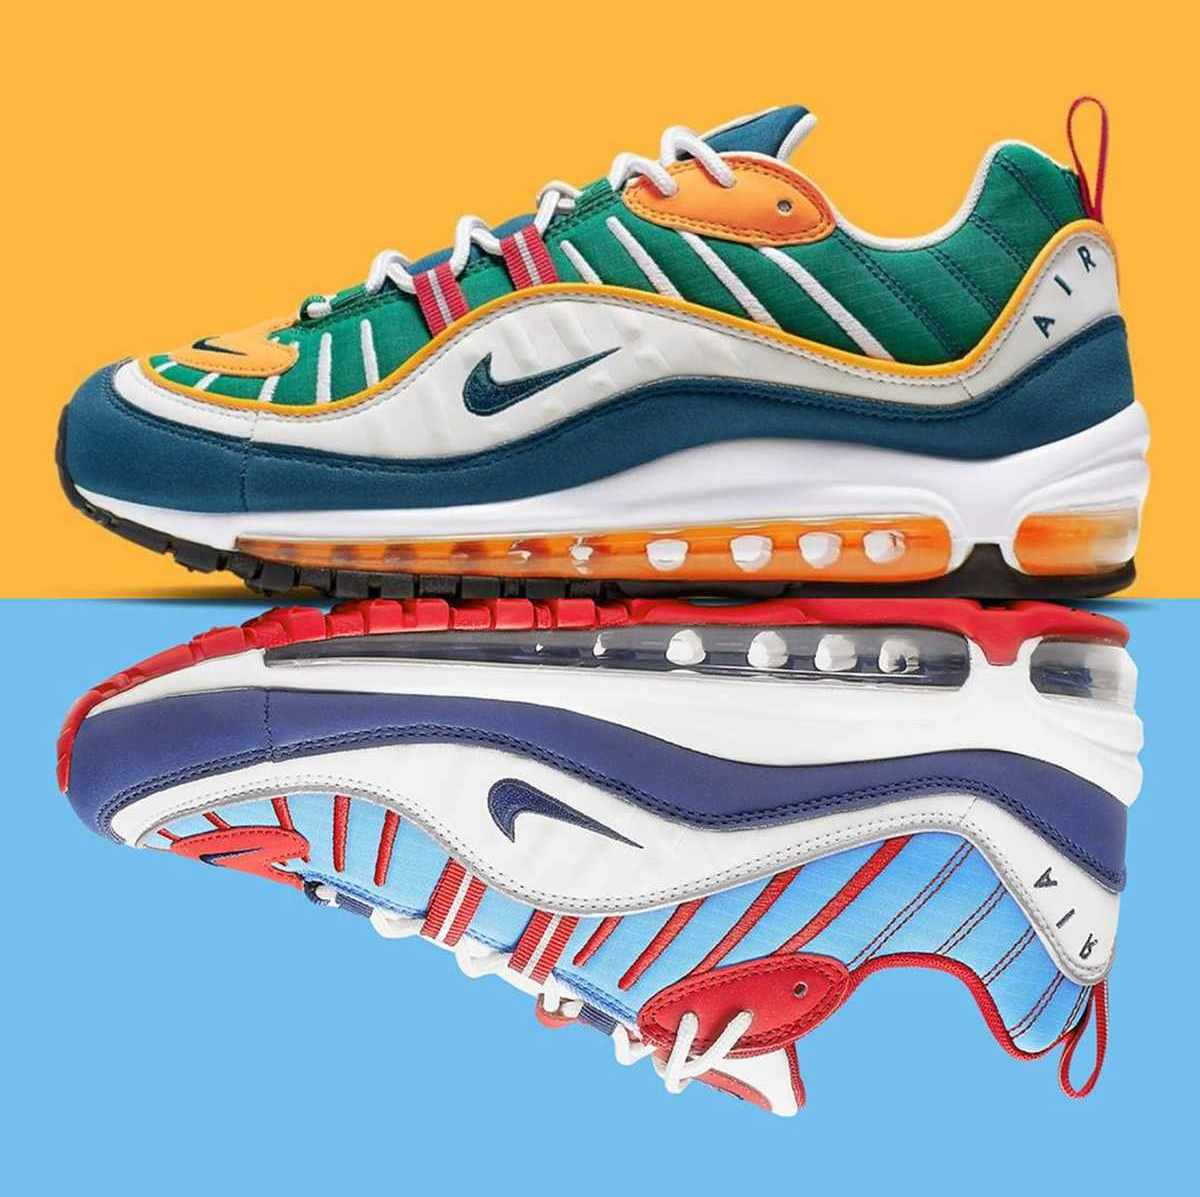 Nike Air Max 98 Dames Ah6799 601 9